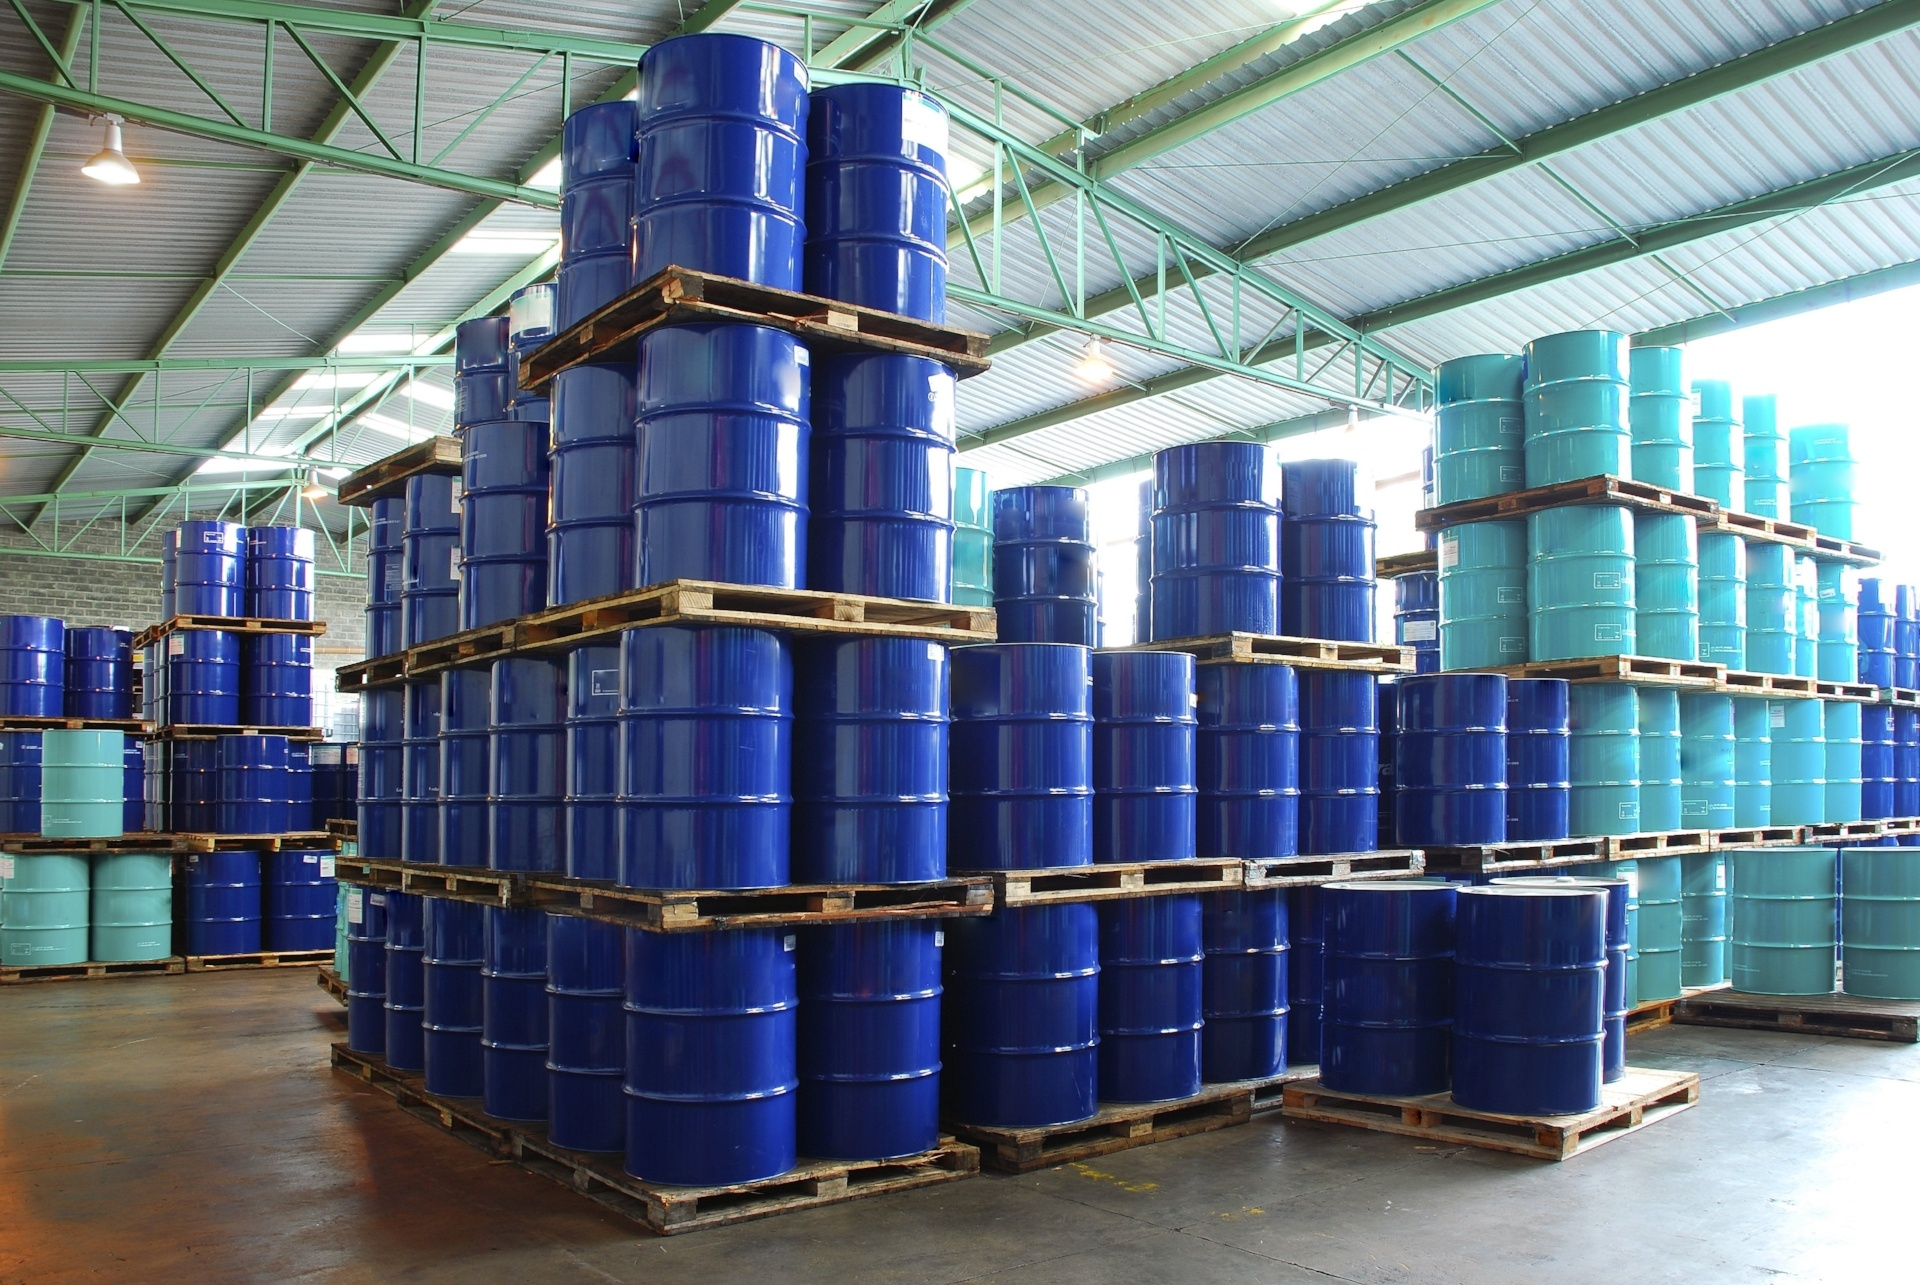 Safety precautions for the storage of flammable liquids in the workplace